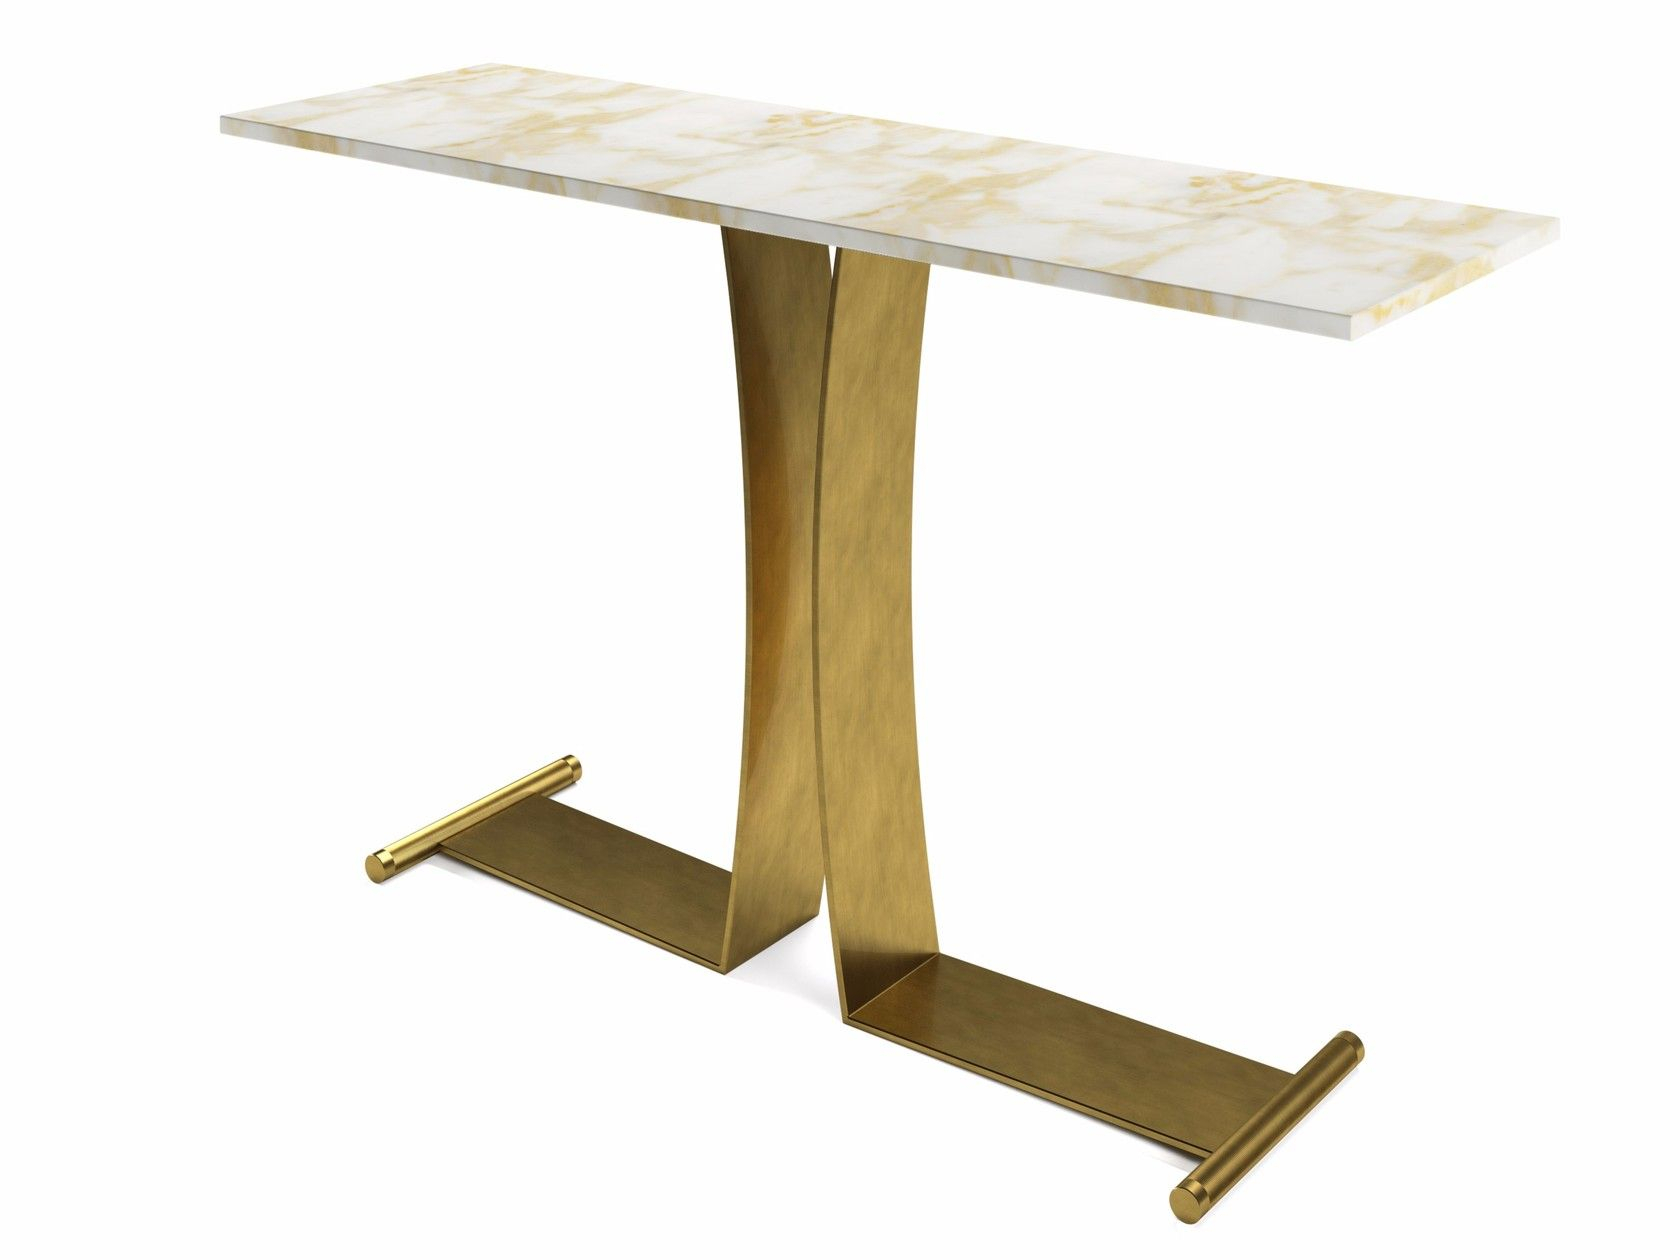 Guy   Console Table In 2018   1gja Console Tables   Pinterest Intended For Parsons Black Marble Top & Brass Base 48x16 Console Tables (View 5 of 30)